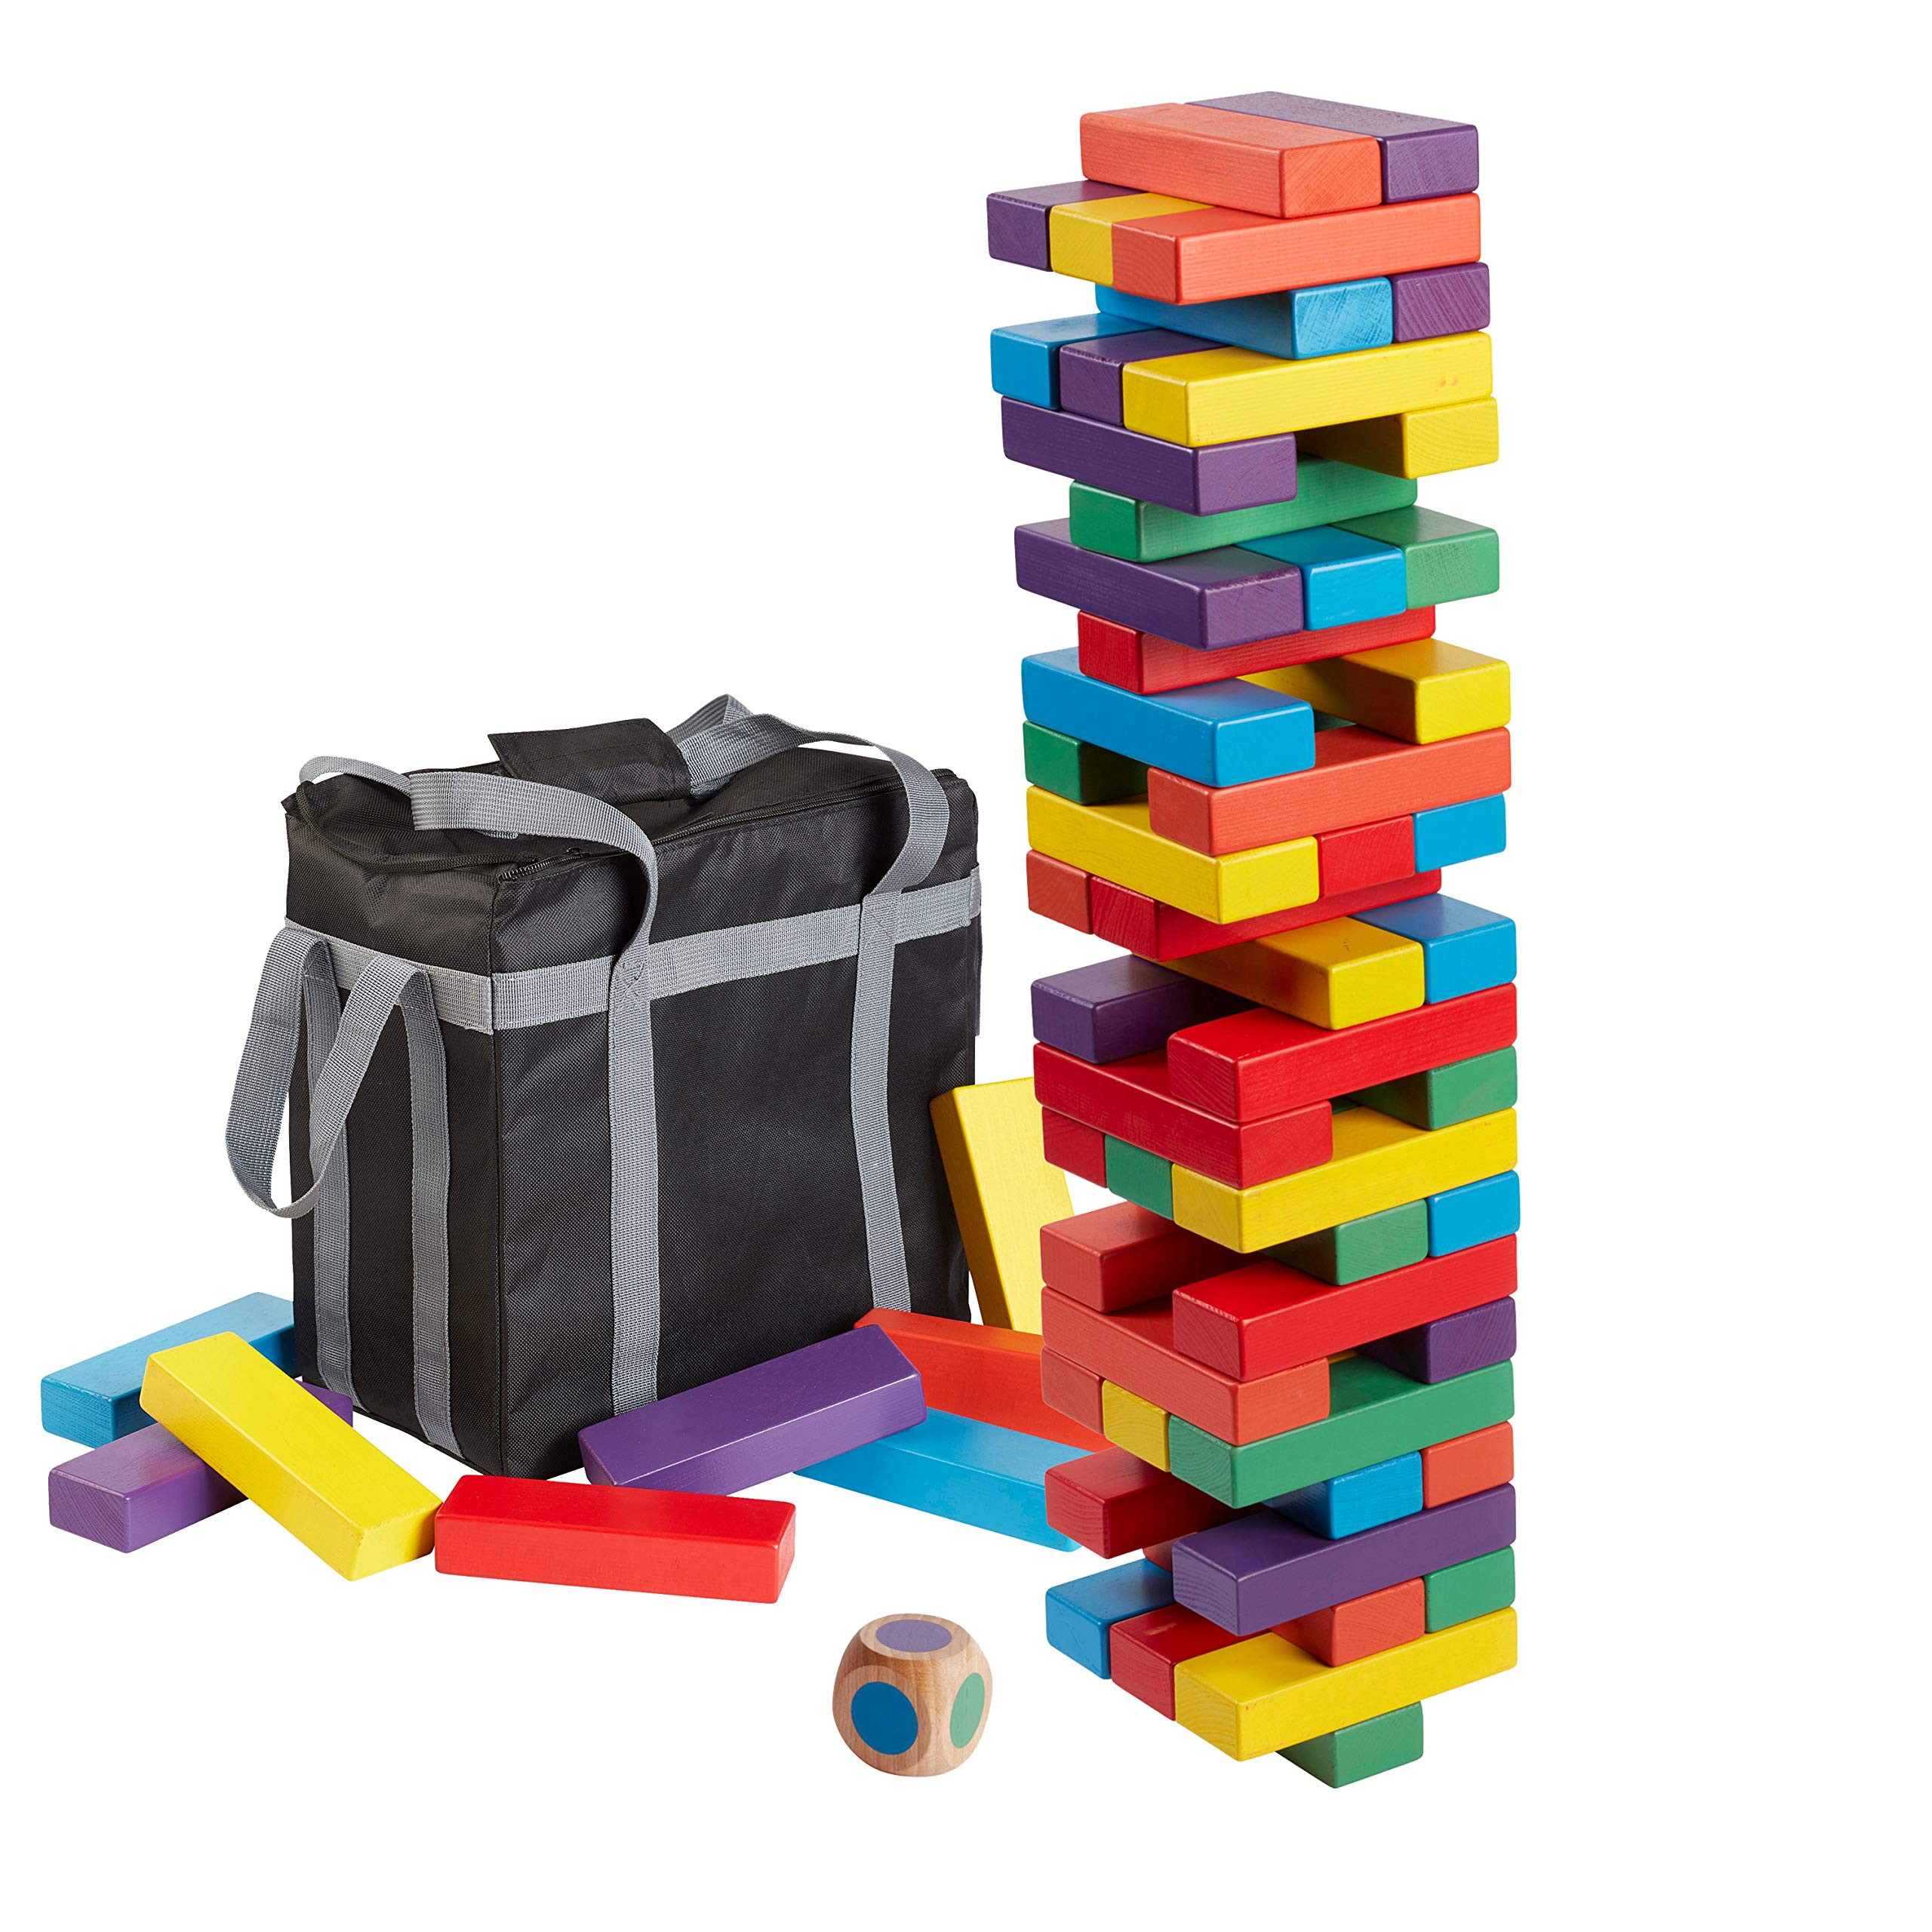 ECR4Kids Risky Rainbow Giant Tumble Tower, Wood Stacking Block Game with Colorful Dice and Storage Bag, Just Right 20'' Tall (54-Piece Set)